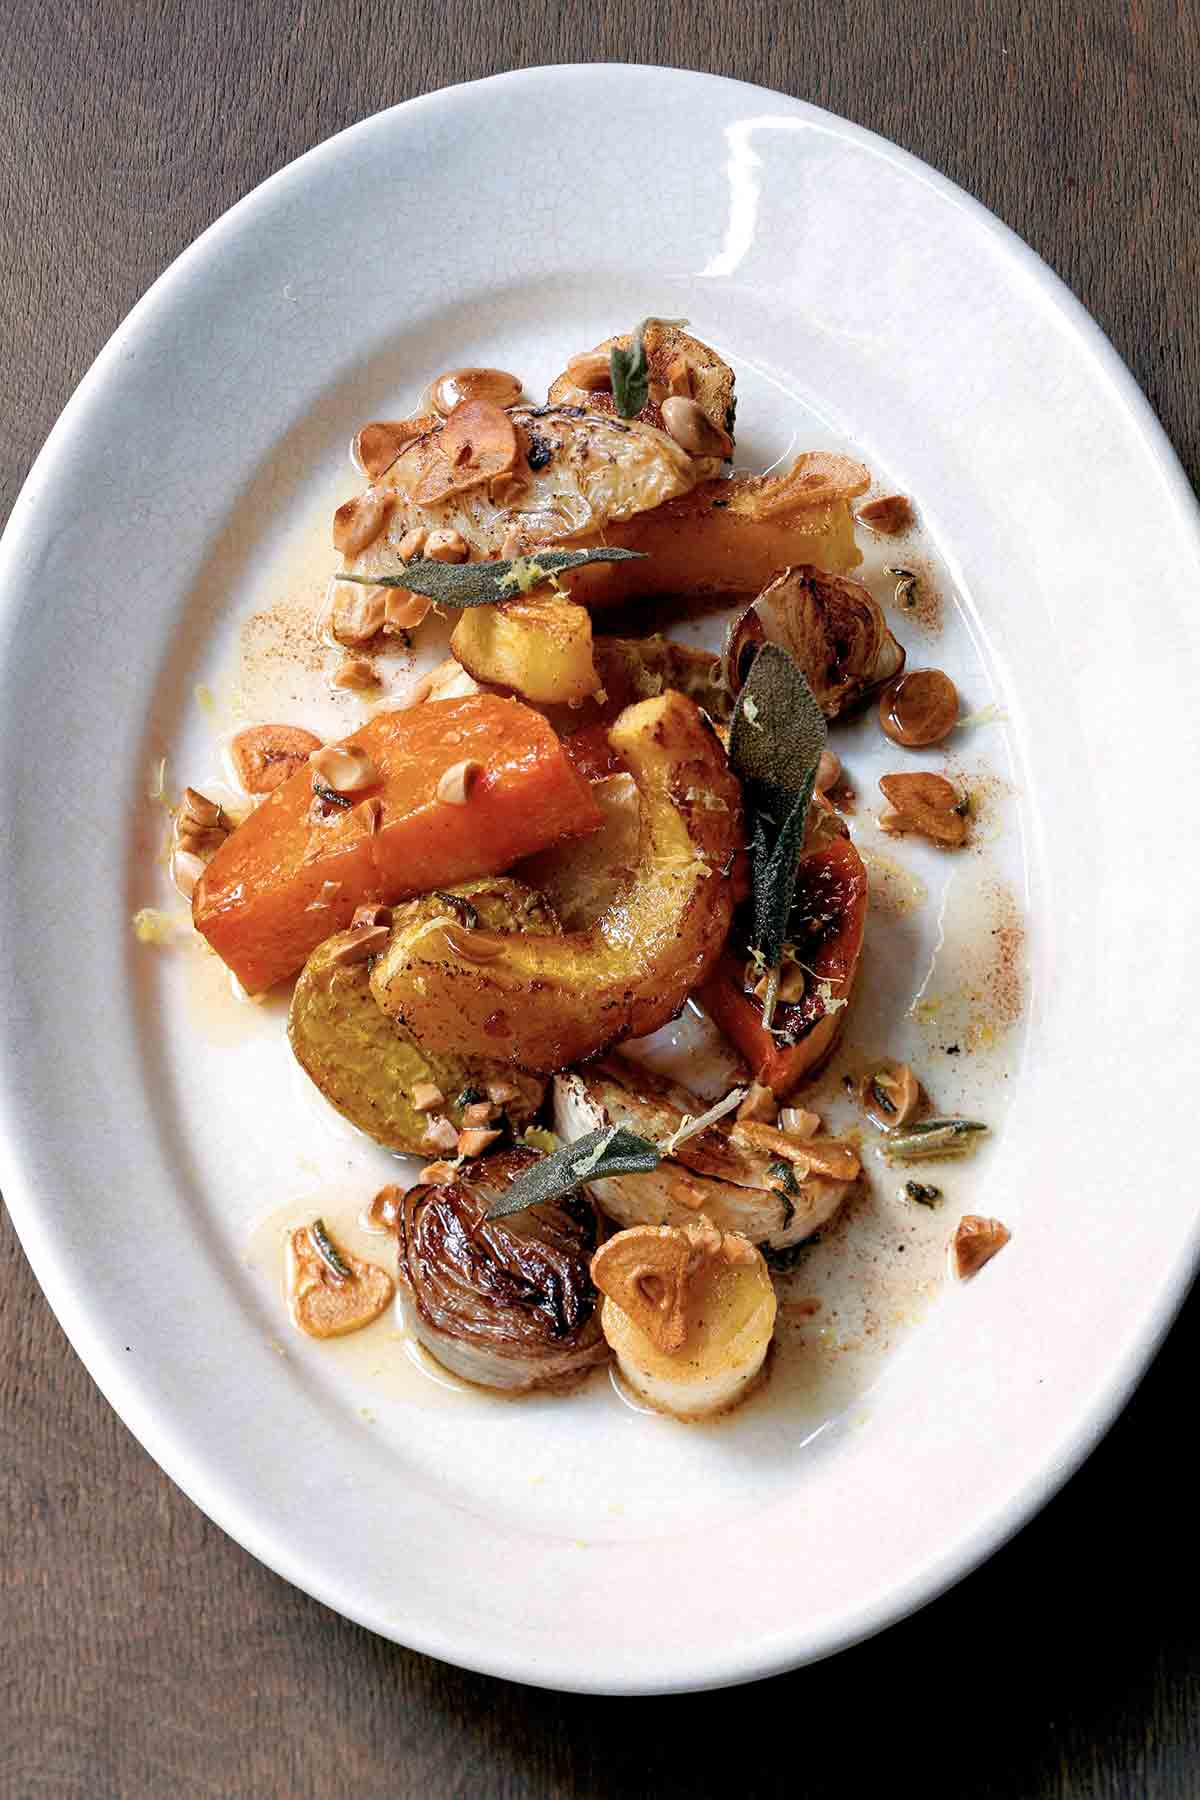 A white oval platter filled with roasted root vegetables and Marcona almonds, drizzled with sage-garlic brown butter.